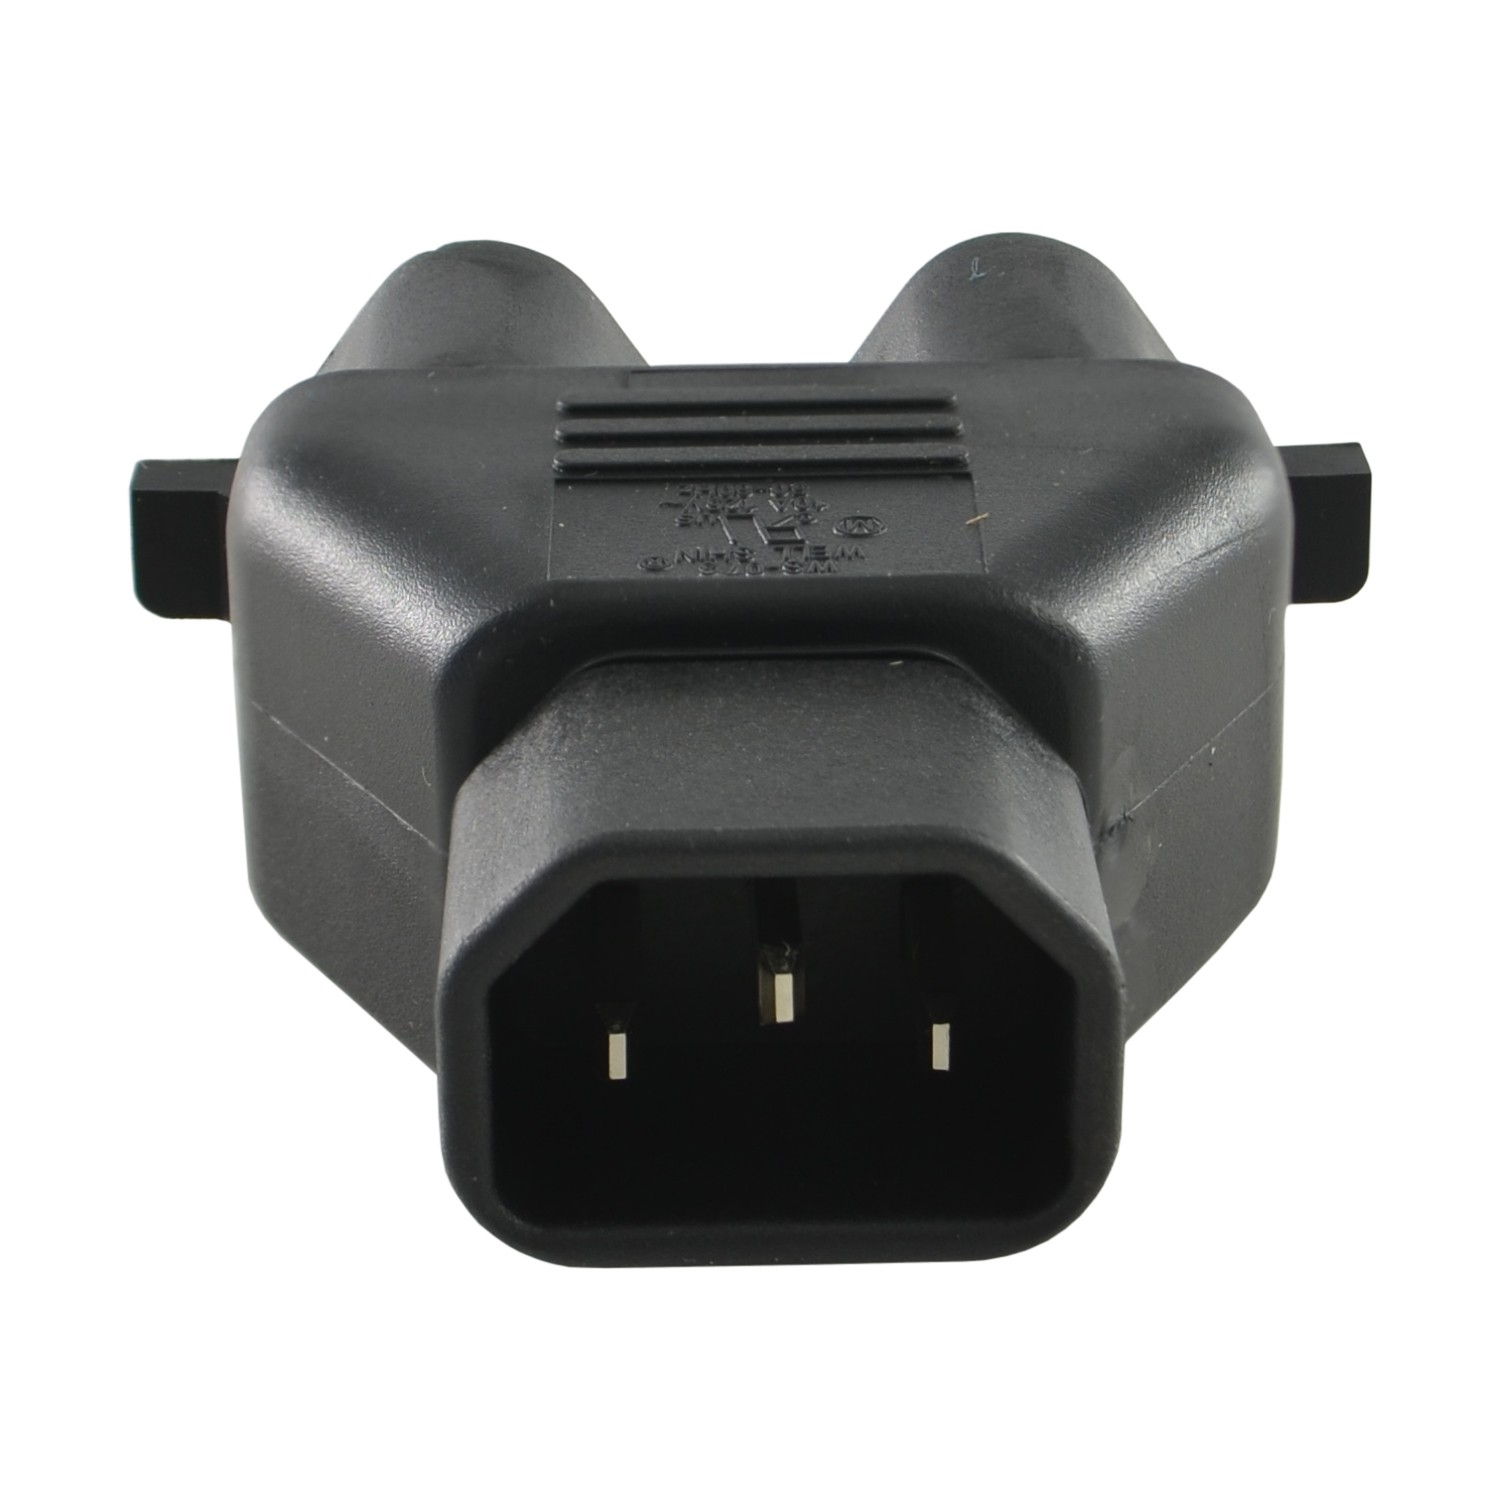 Iec C14 Inlet Pinout C14 to 2 5 15r Power Tap Of Iec C14 Inlet Pinout